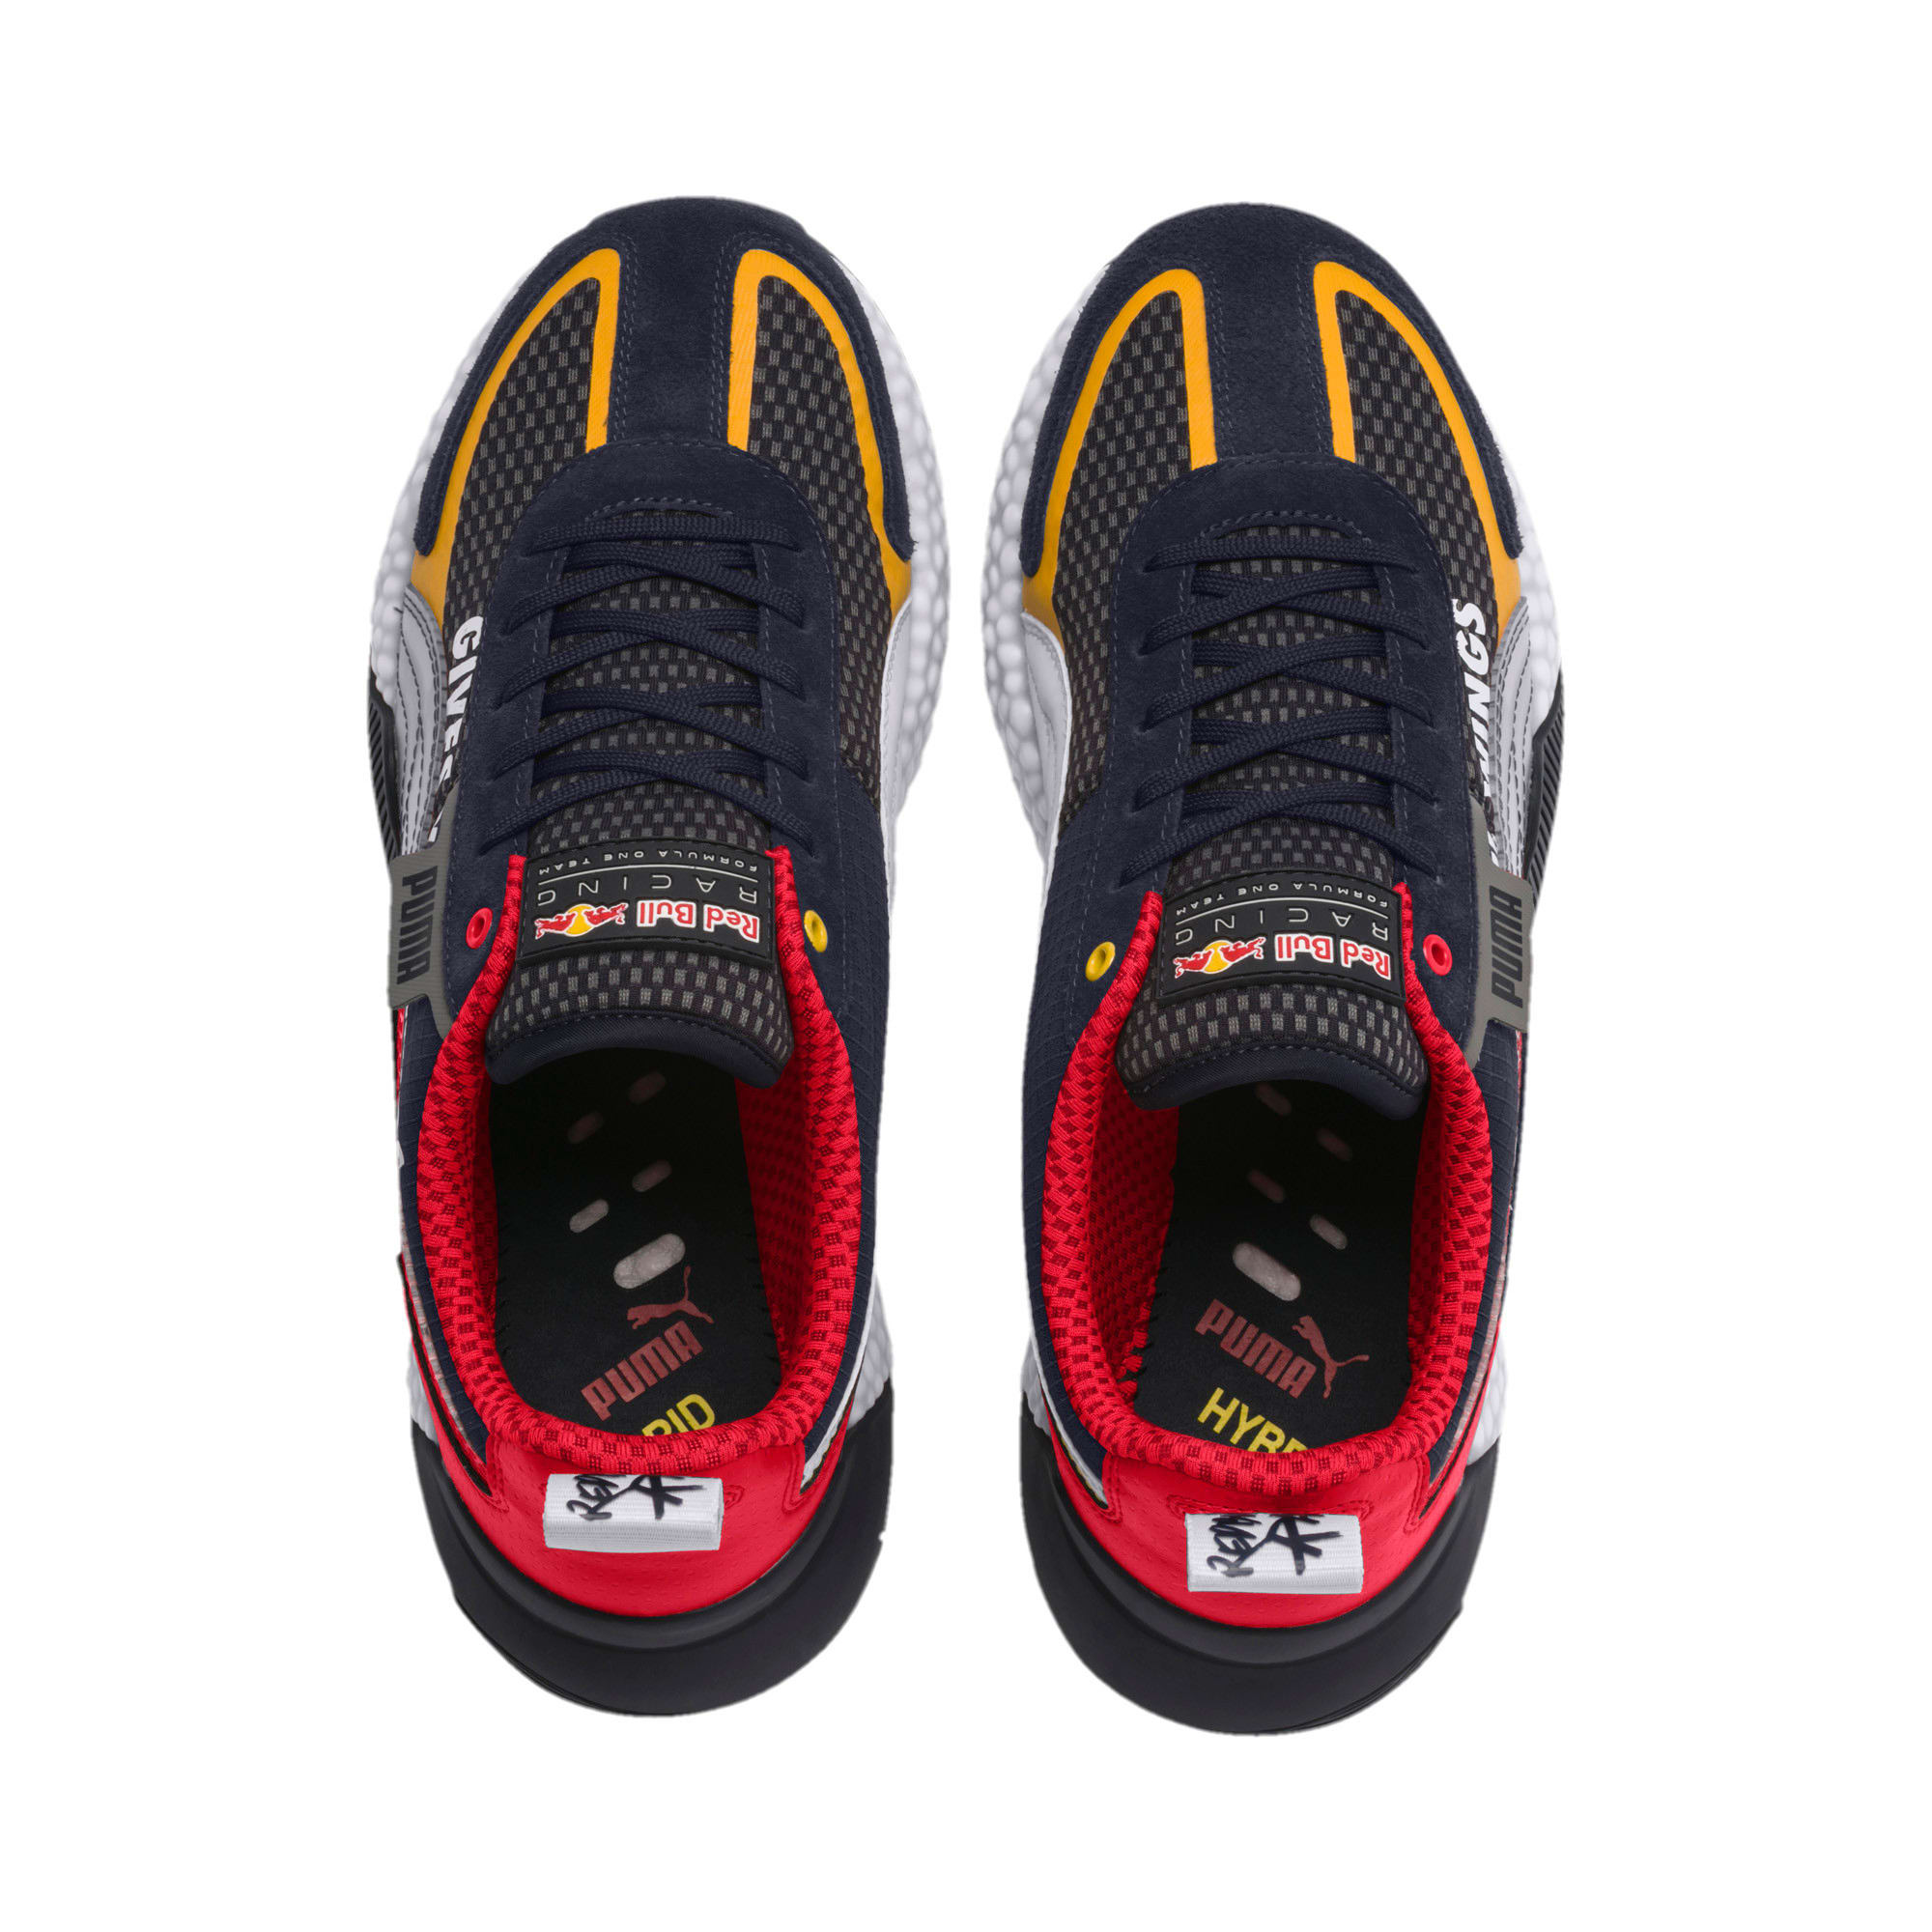 Thumbnail 7 of Red Bull Racing Speed HYBRID Men's Trainers, NIGHT SKY-White-Chinese Red, medium